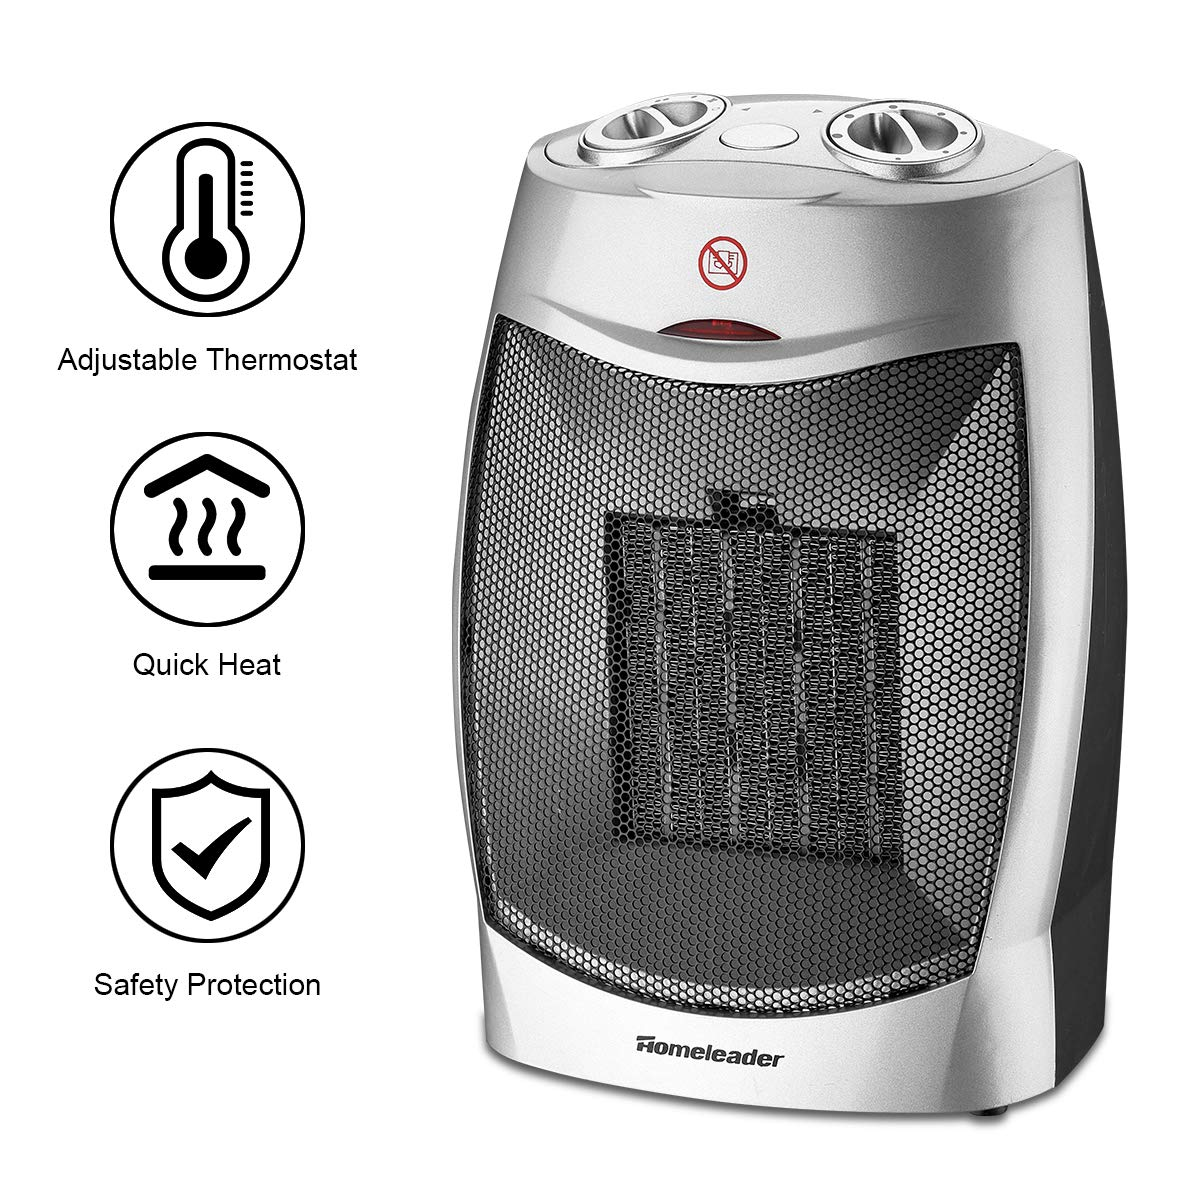 Homeleader Ceramic Space Heater for Home and Office, Portable Electric Heater with Adjustable Thermoststs, 750W 1500W